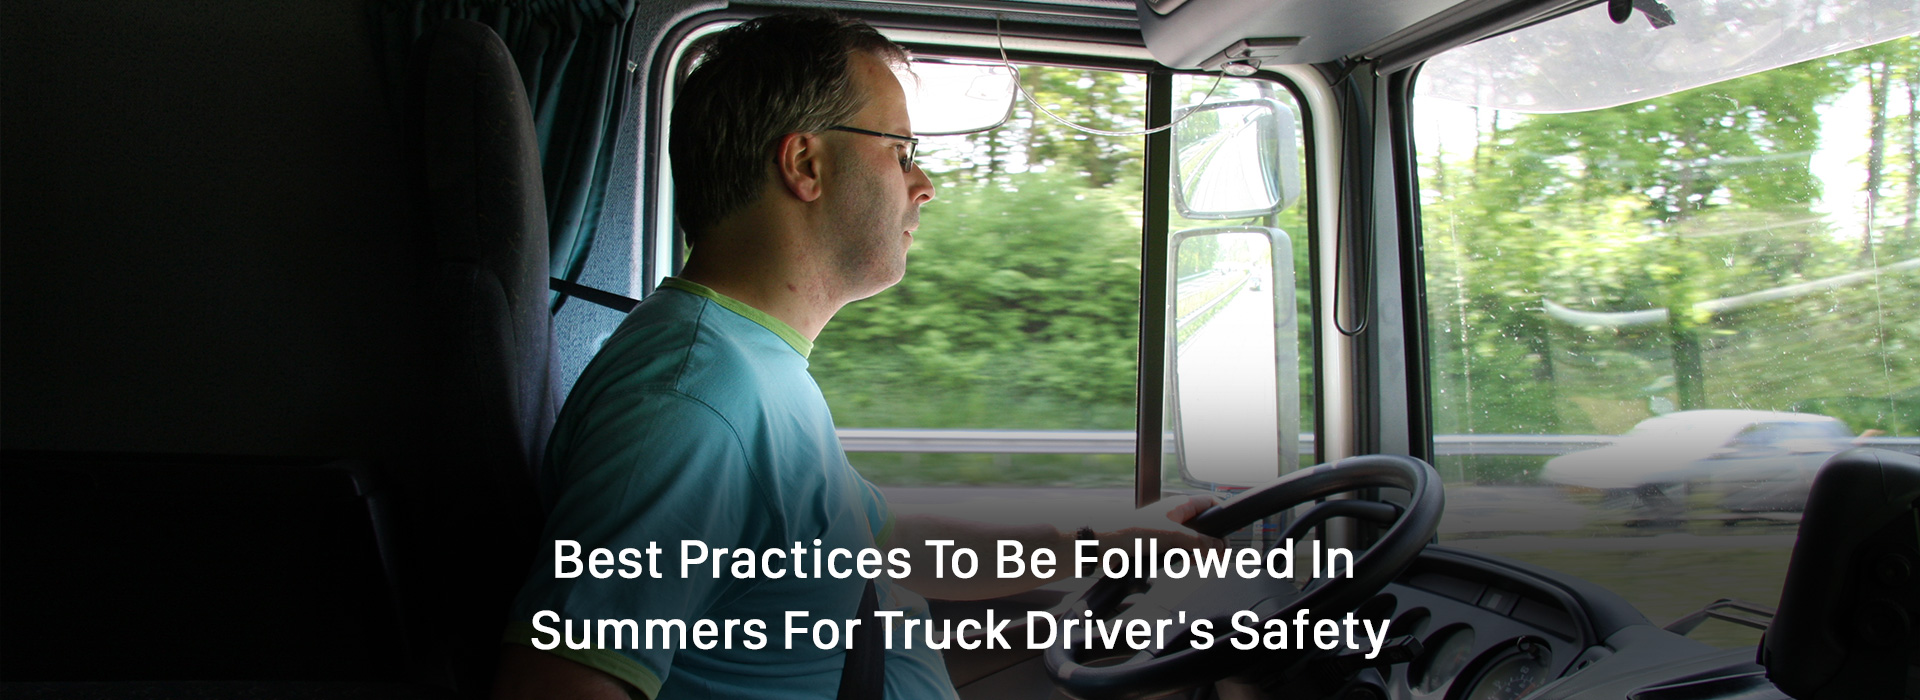 practices to be followed in summers for truck drivers